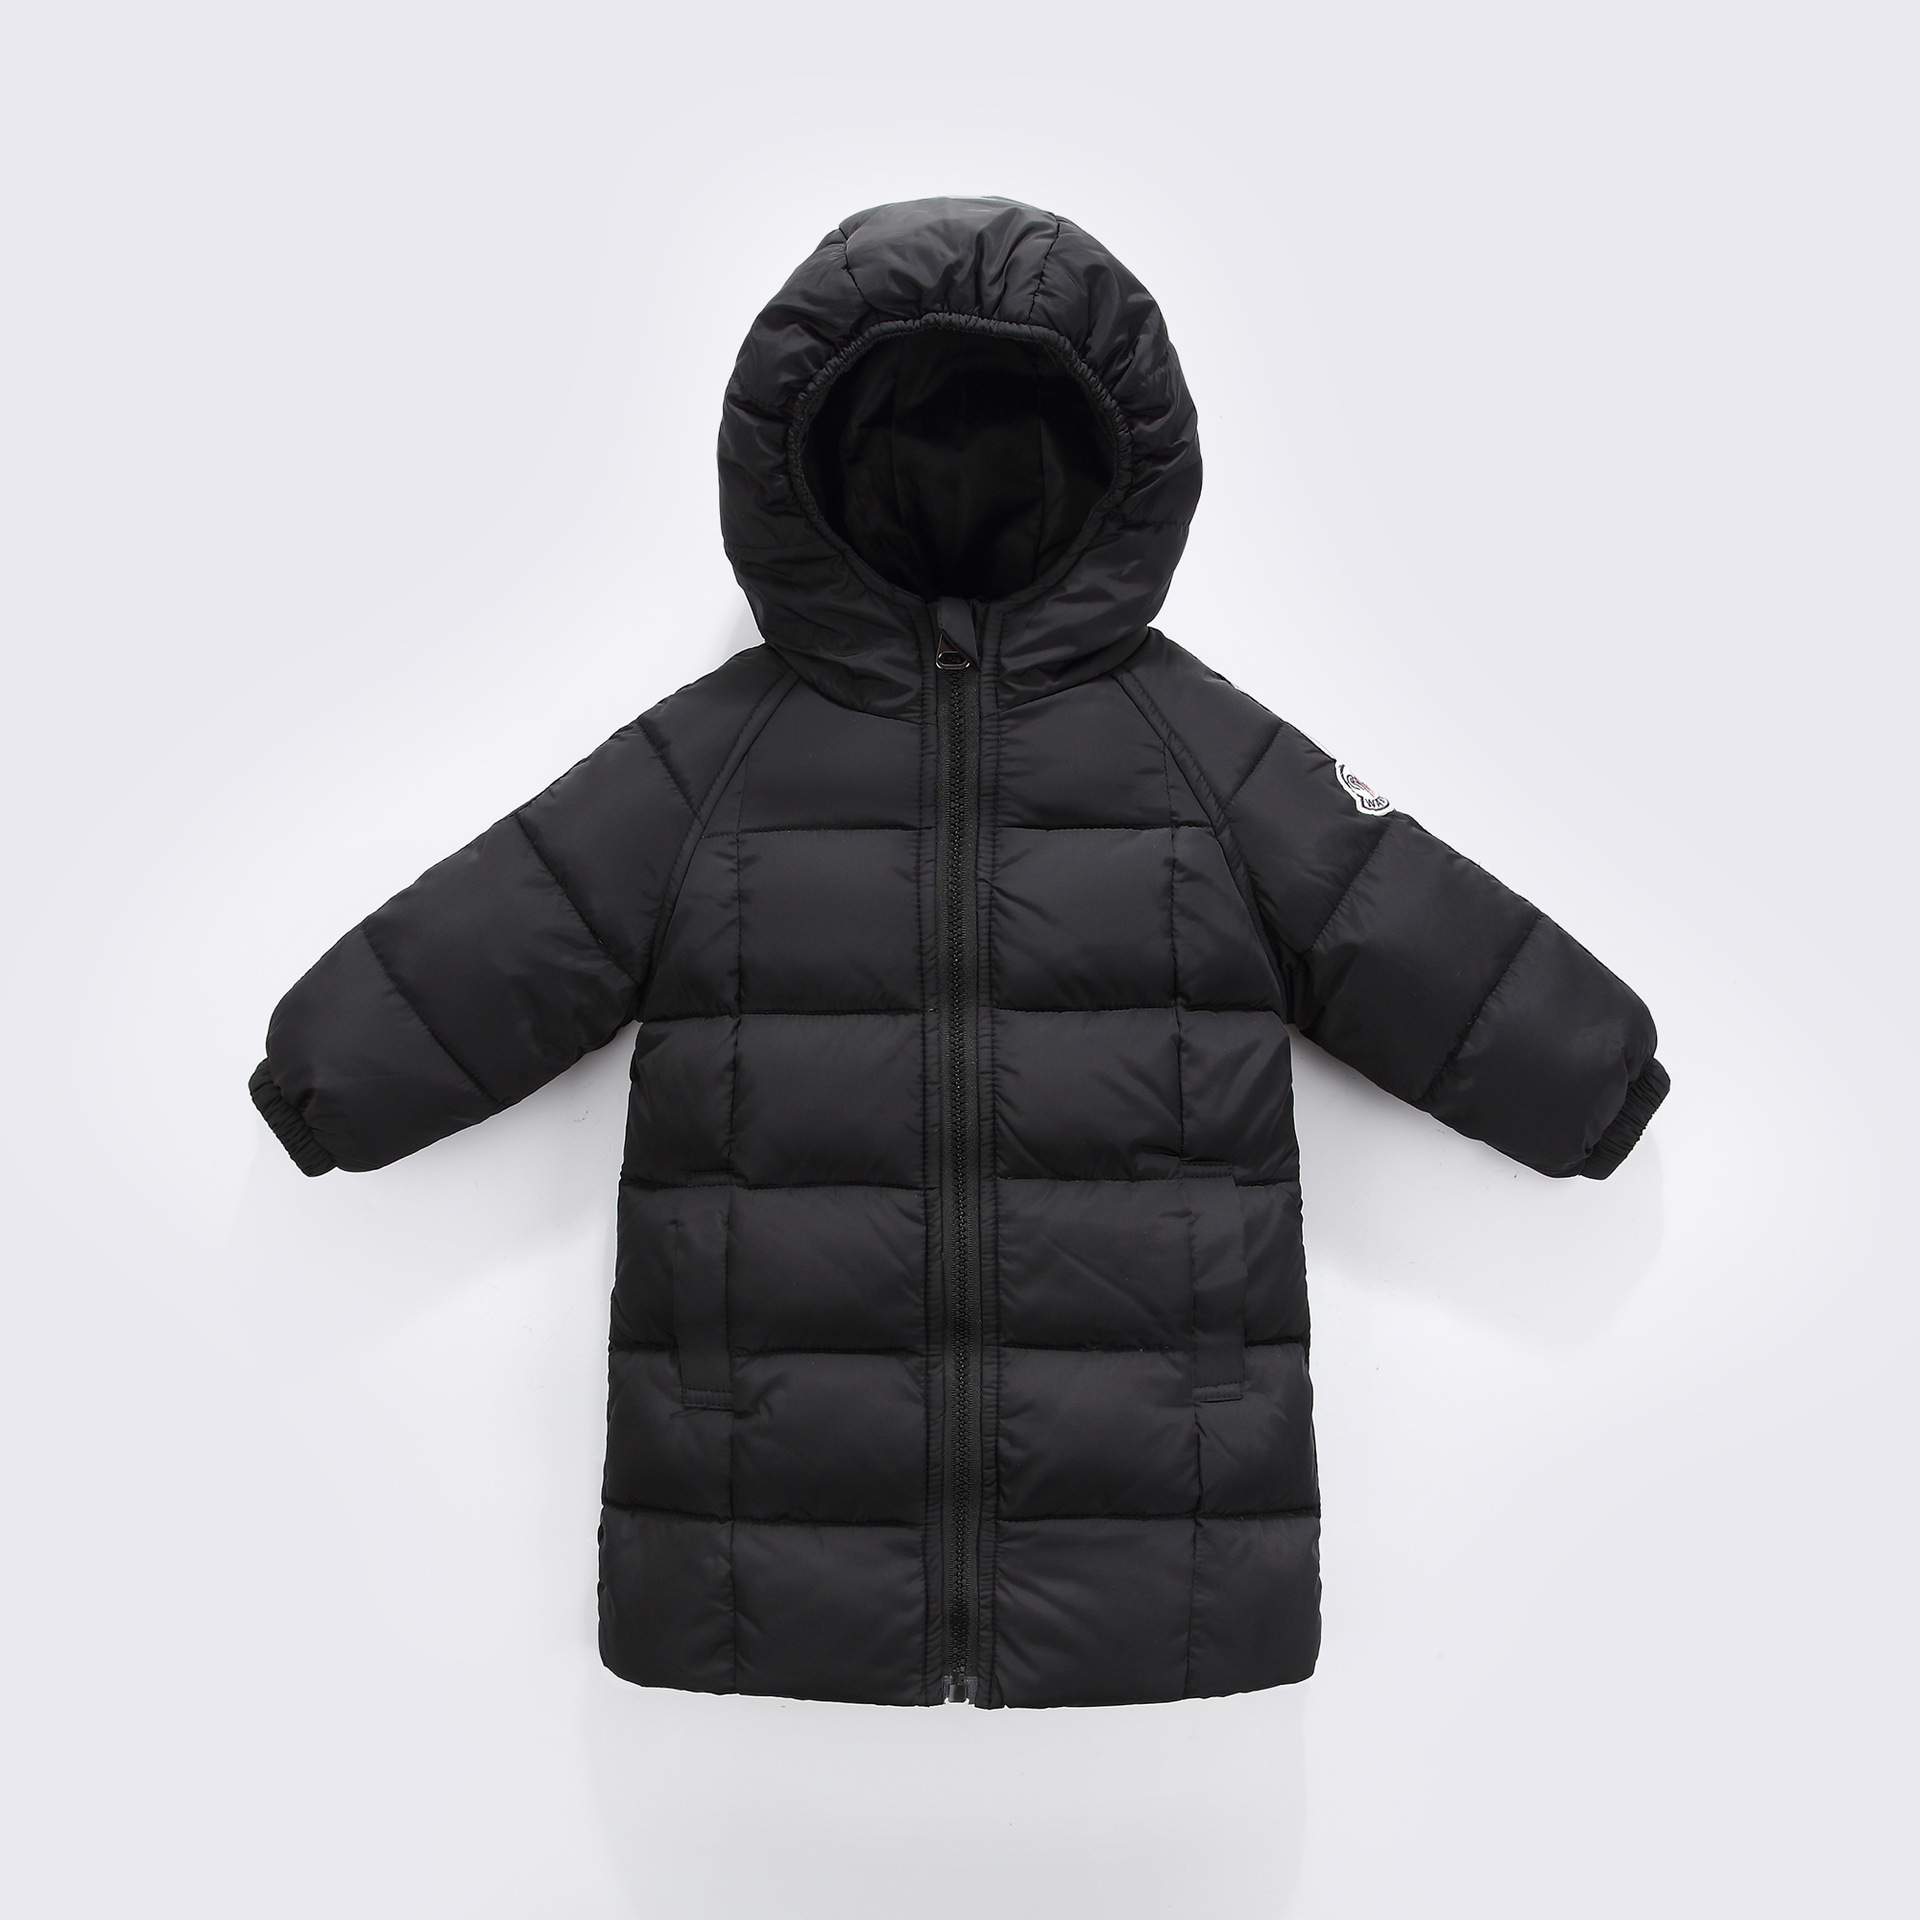 2017 Newest Boys and Girls Duck Down Long Coat Winter Warm Long Jacket Children Parkas Hodded Snow Wear Infant Outwear Overcoats 2016 winter children warm thick snow proof coat baby boys white duck down jacket vest kids casual long style outerwear parkas